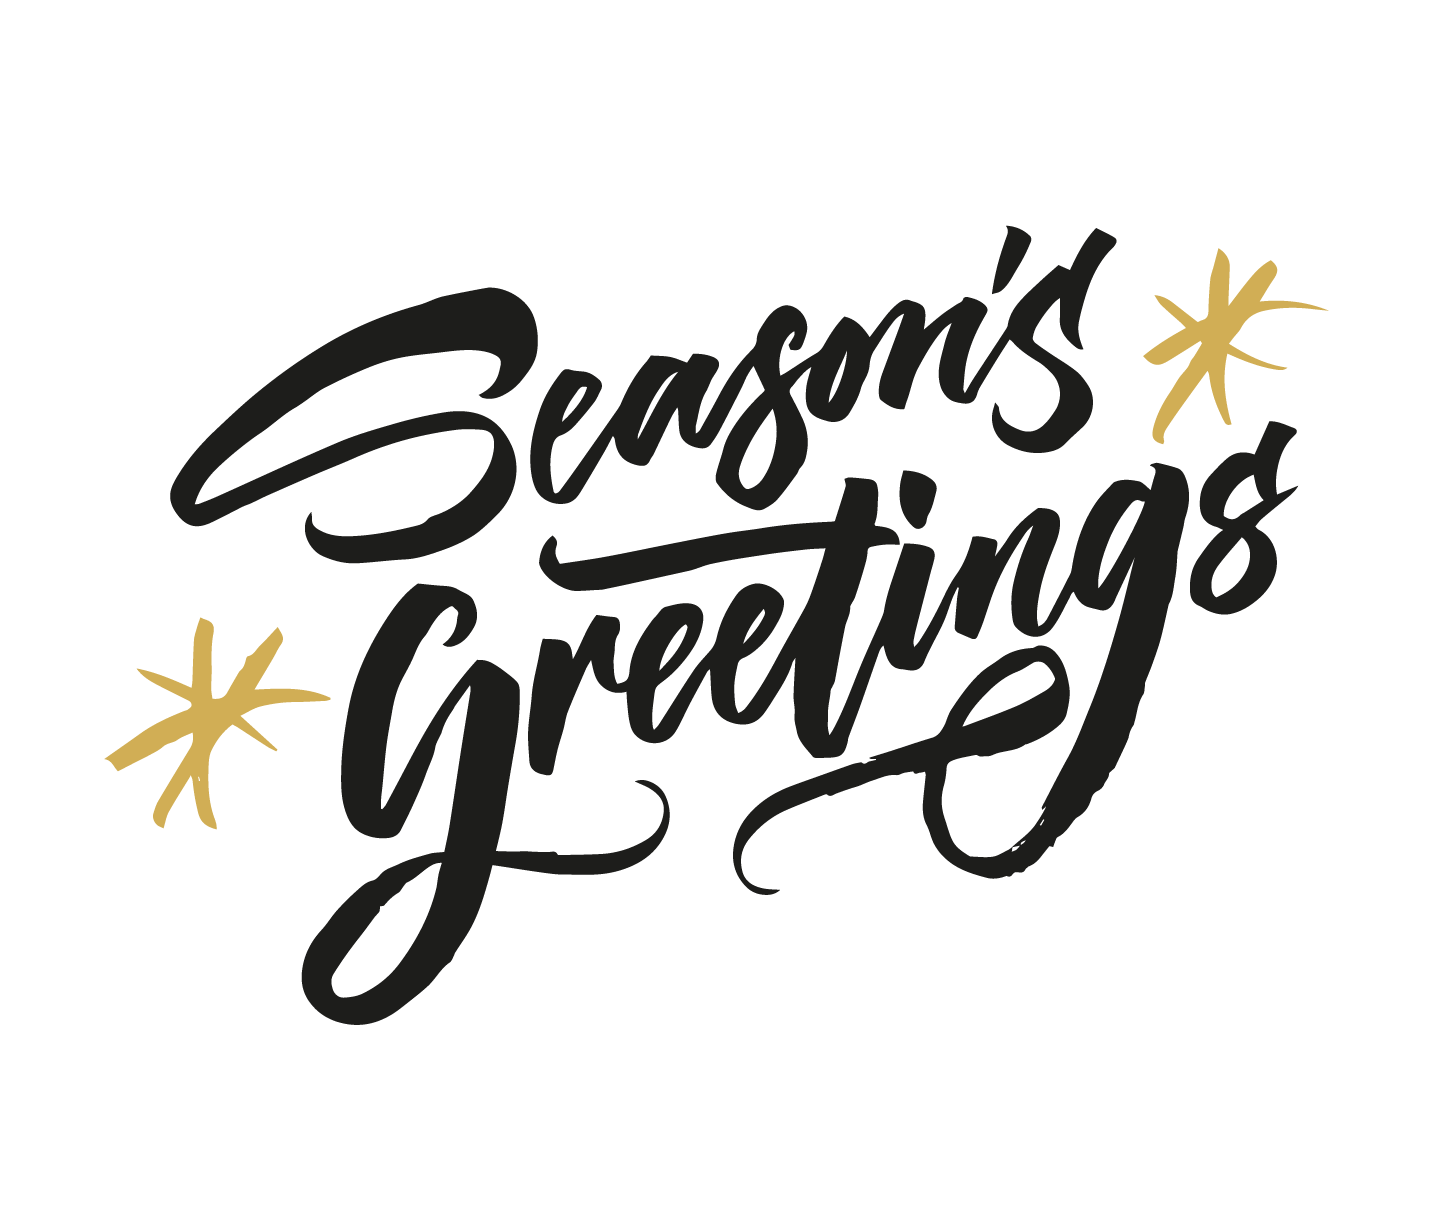 Easy tips to personalize seasons greetings ijugaad blog easy tips to personalize seasons greetings kristyandbryce Images